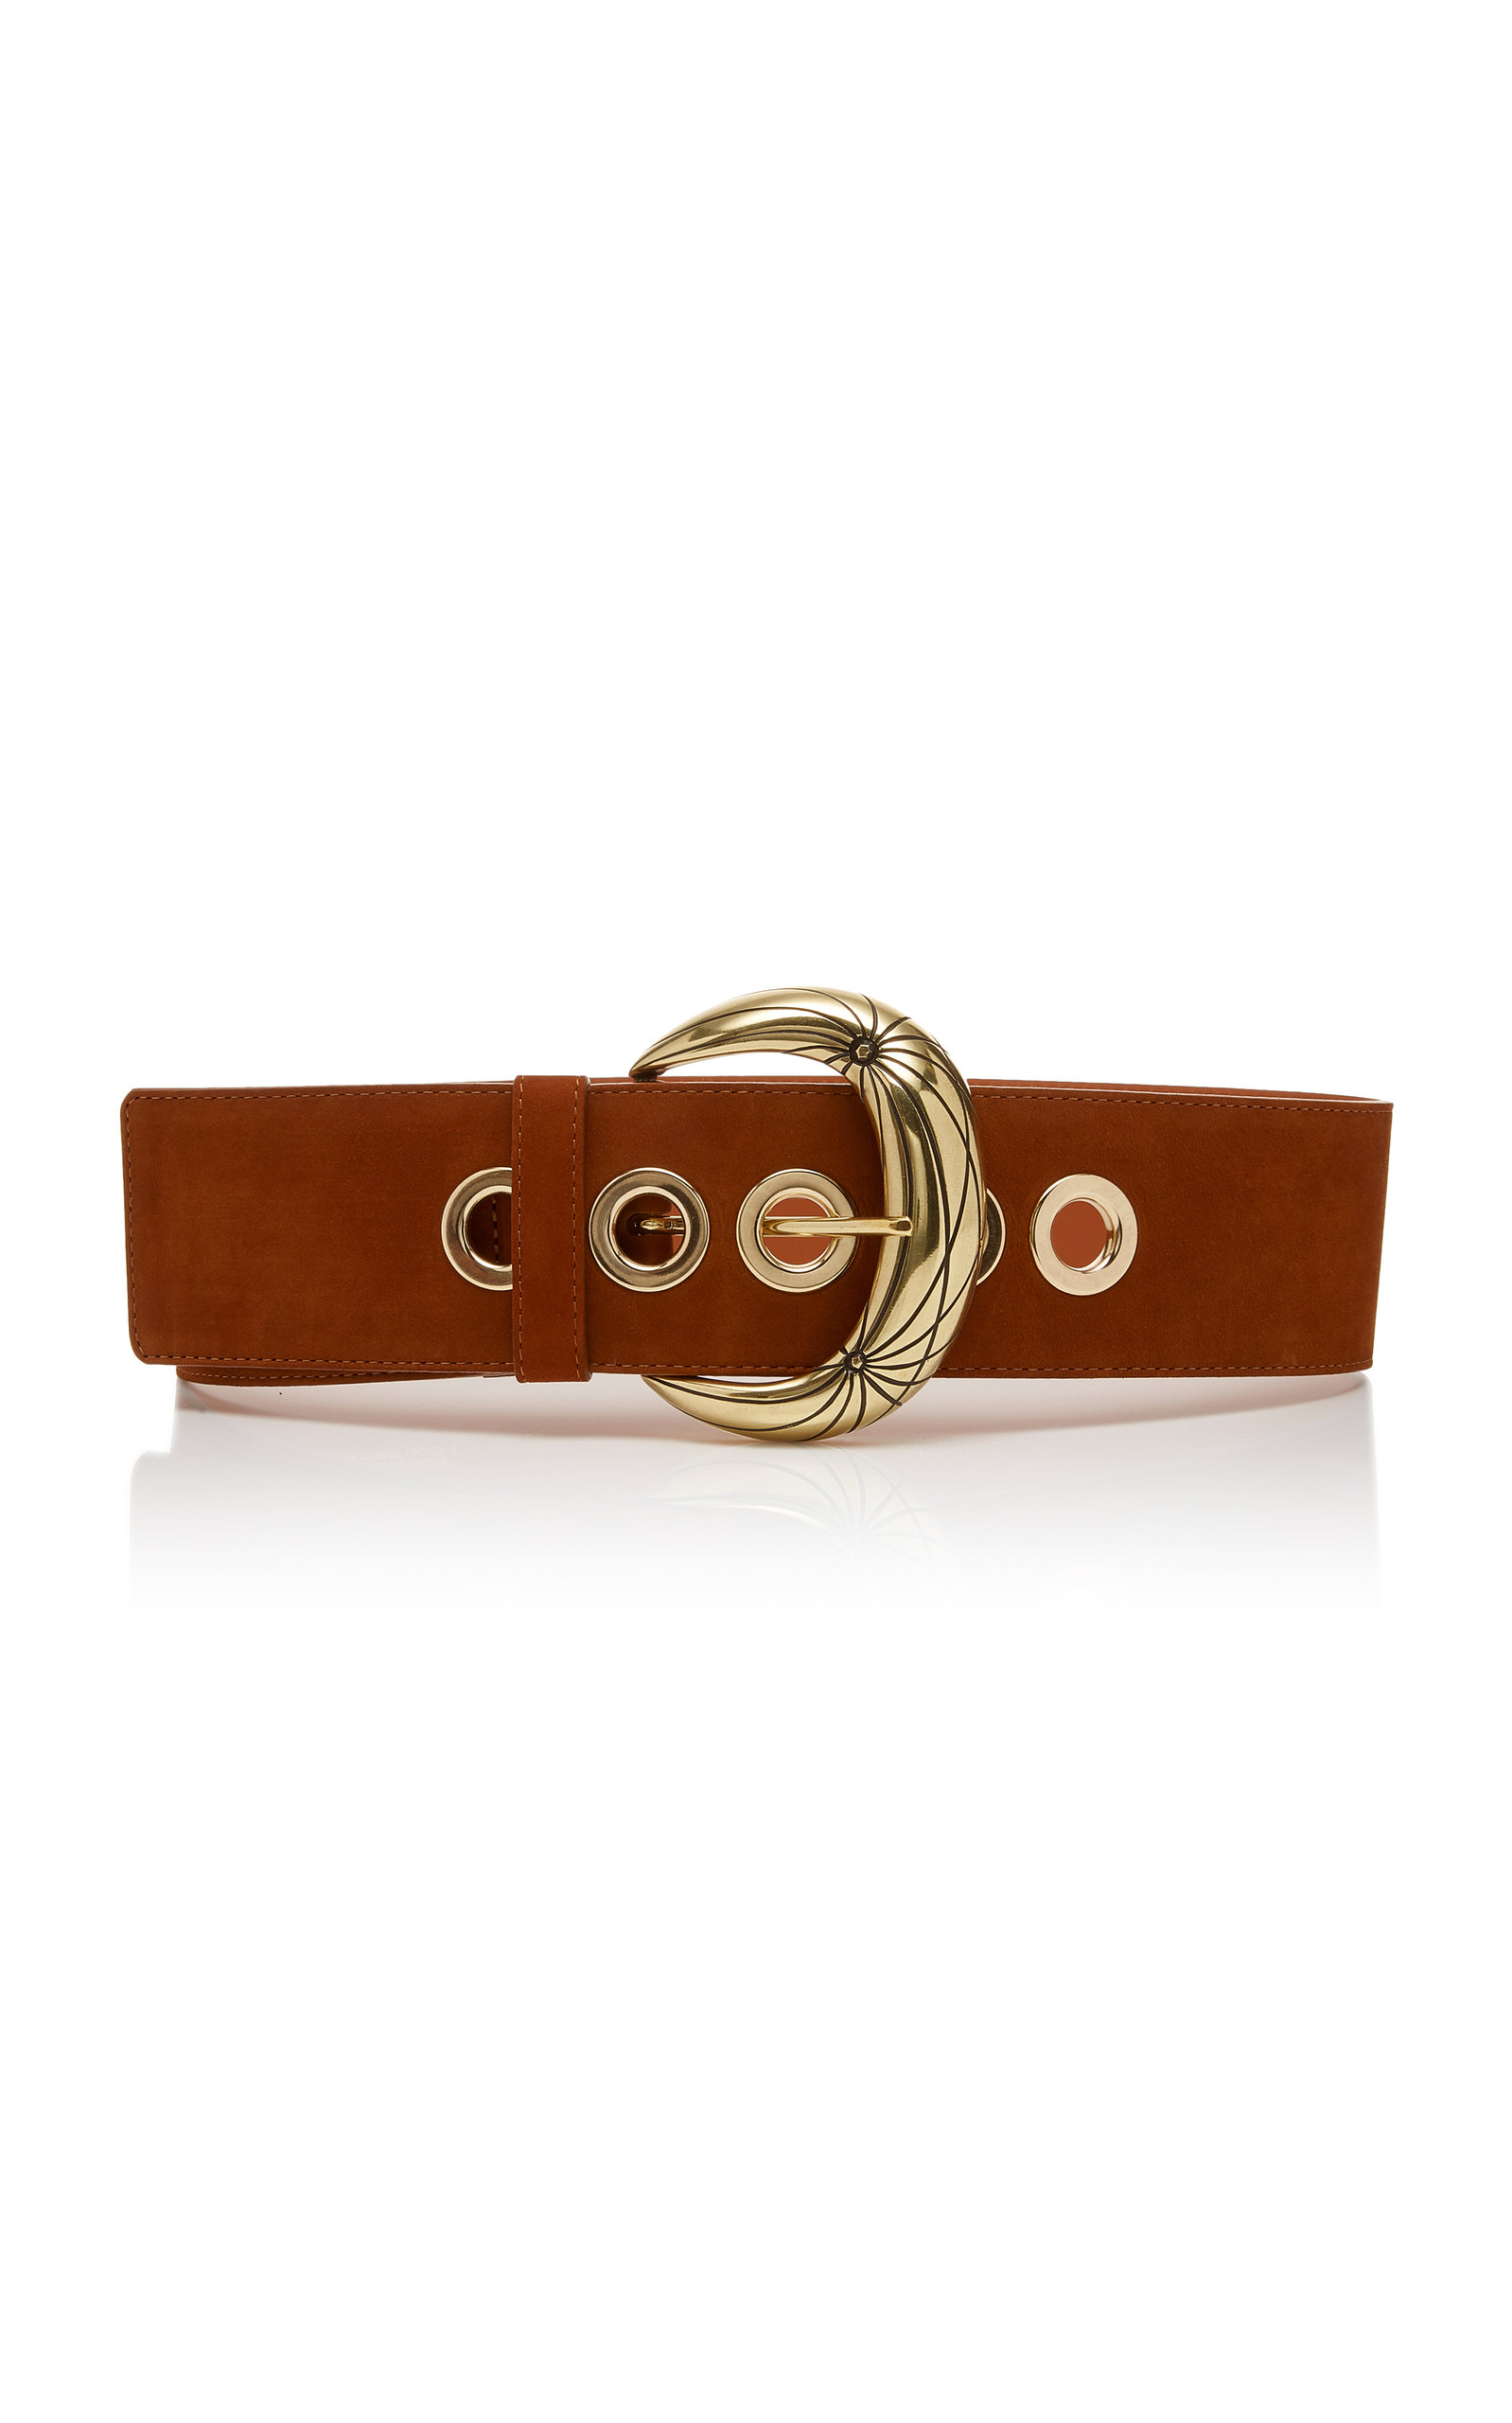 Maison Boinet Nubuck Leather Belt